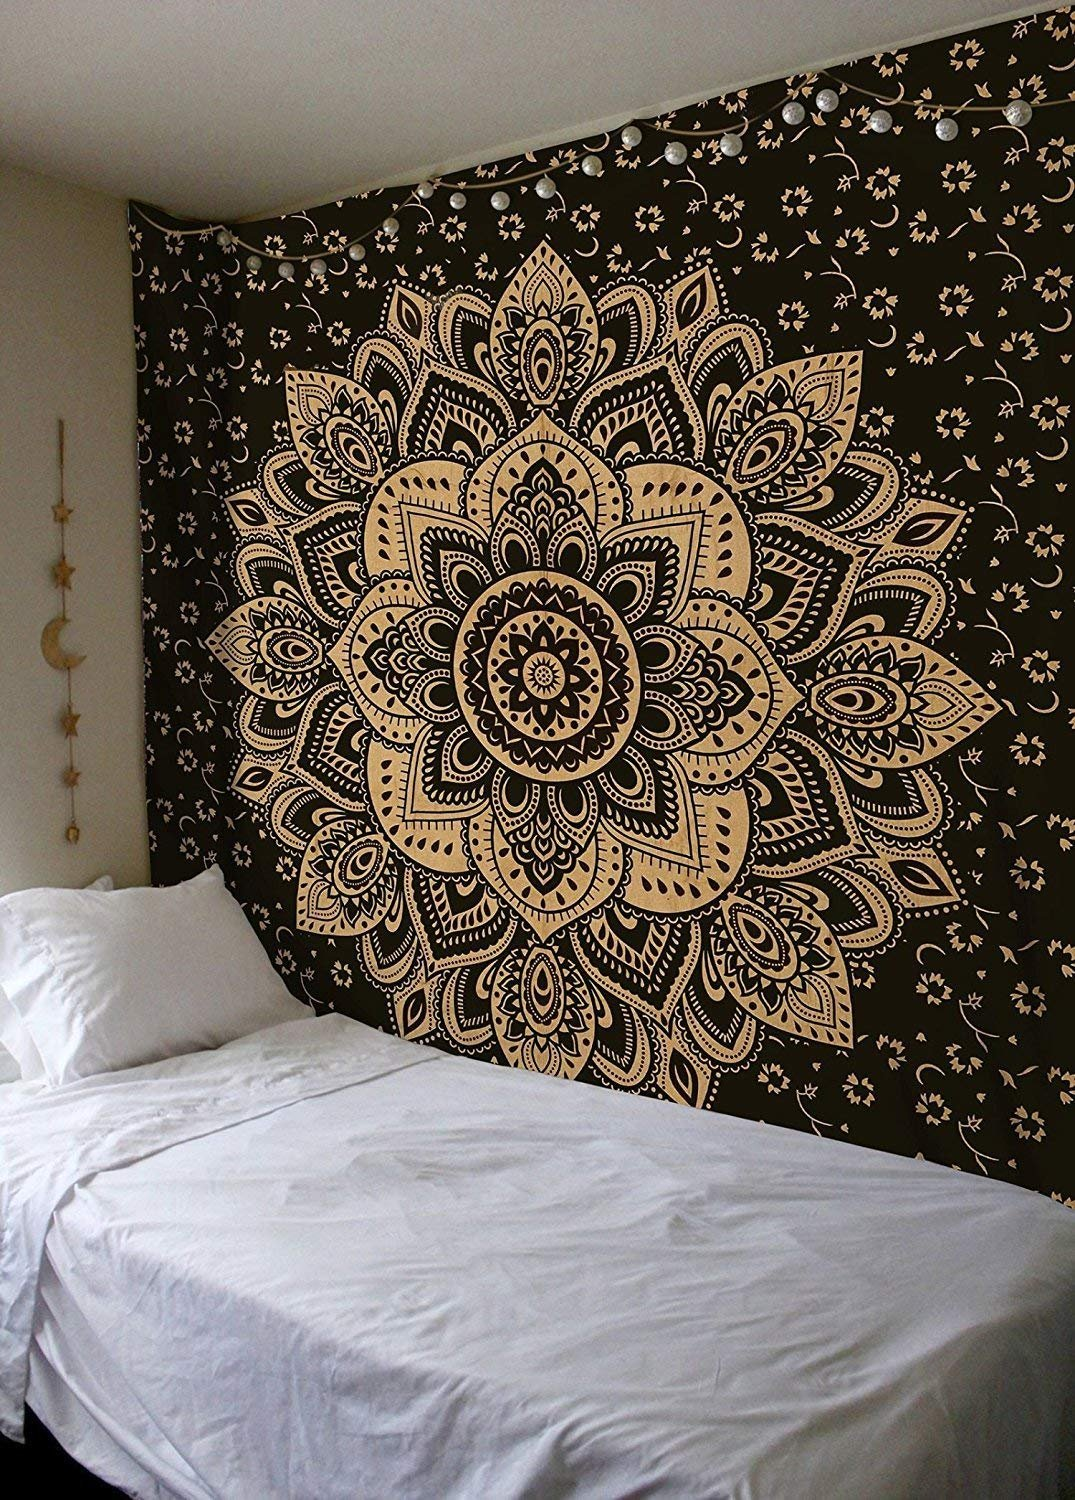 Aakriti Gallery Tapestry Queen Ombre Gift Hippie tapestries Mandala Bohemian Psychedelic Intricate Indian Bedspread 92x82 Inches (Grey) TDO32